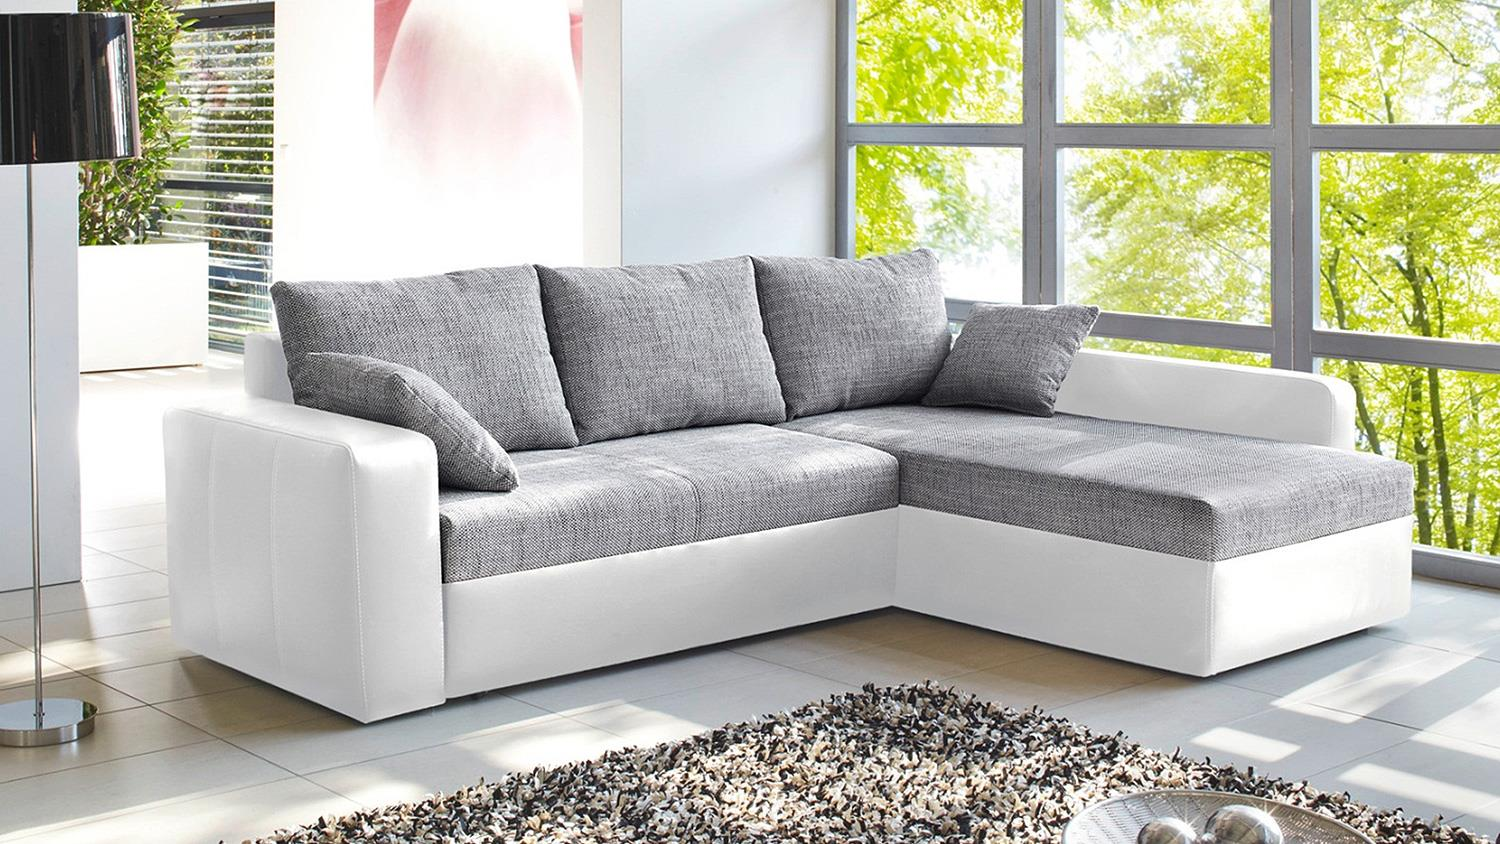 sofa mit bettfunktion rattan sofa mit bettfunktion b. Black Bedroom Furniture Sets. Home Design Ideas